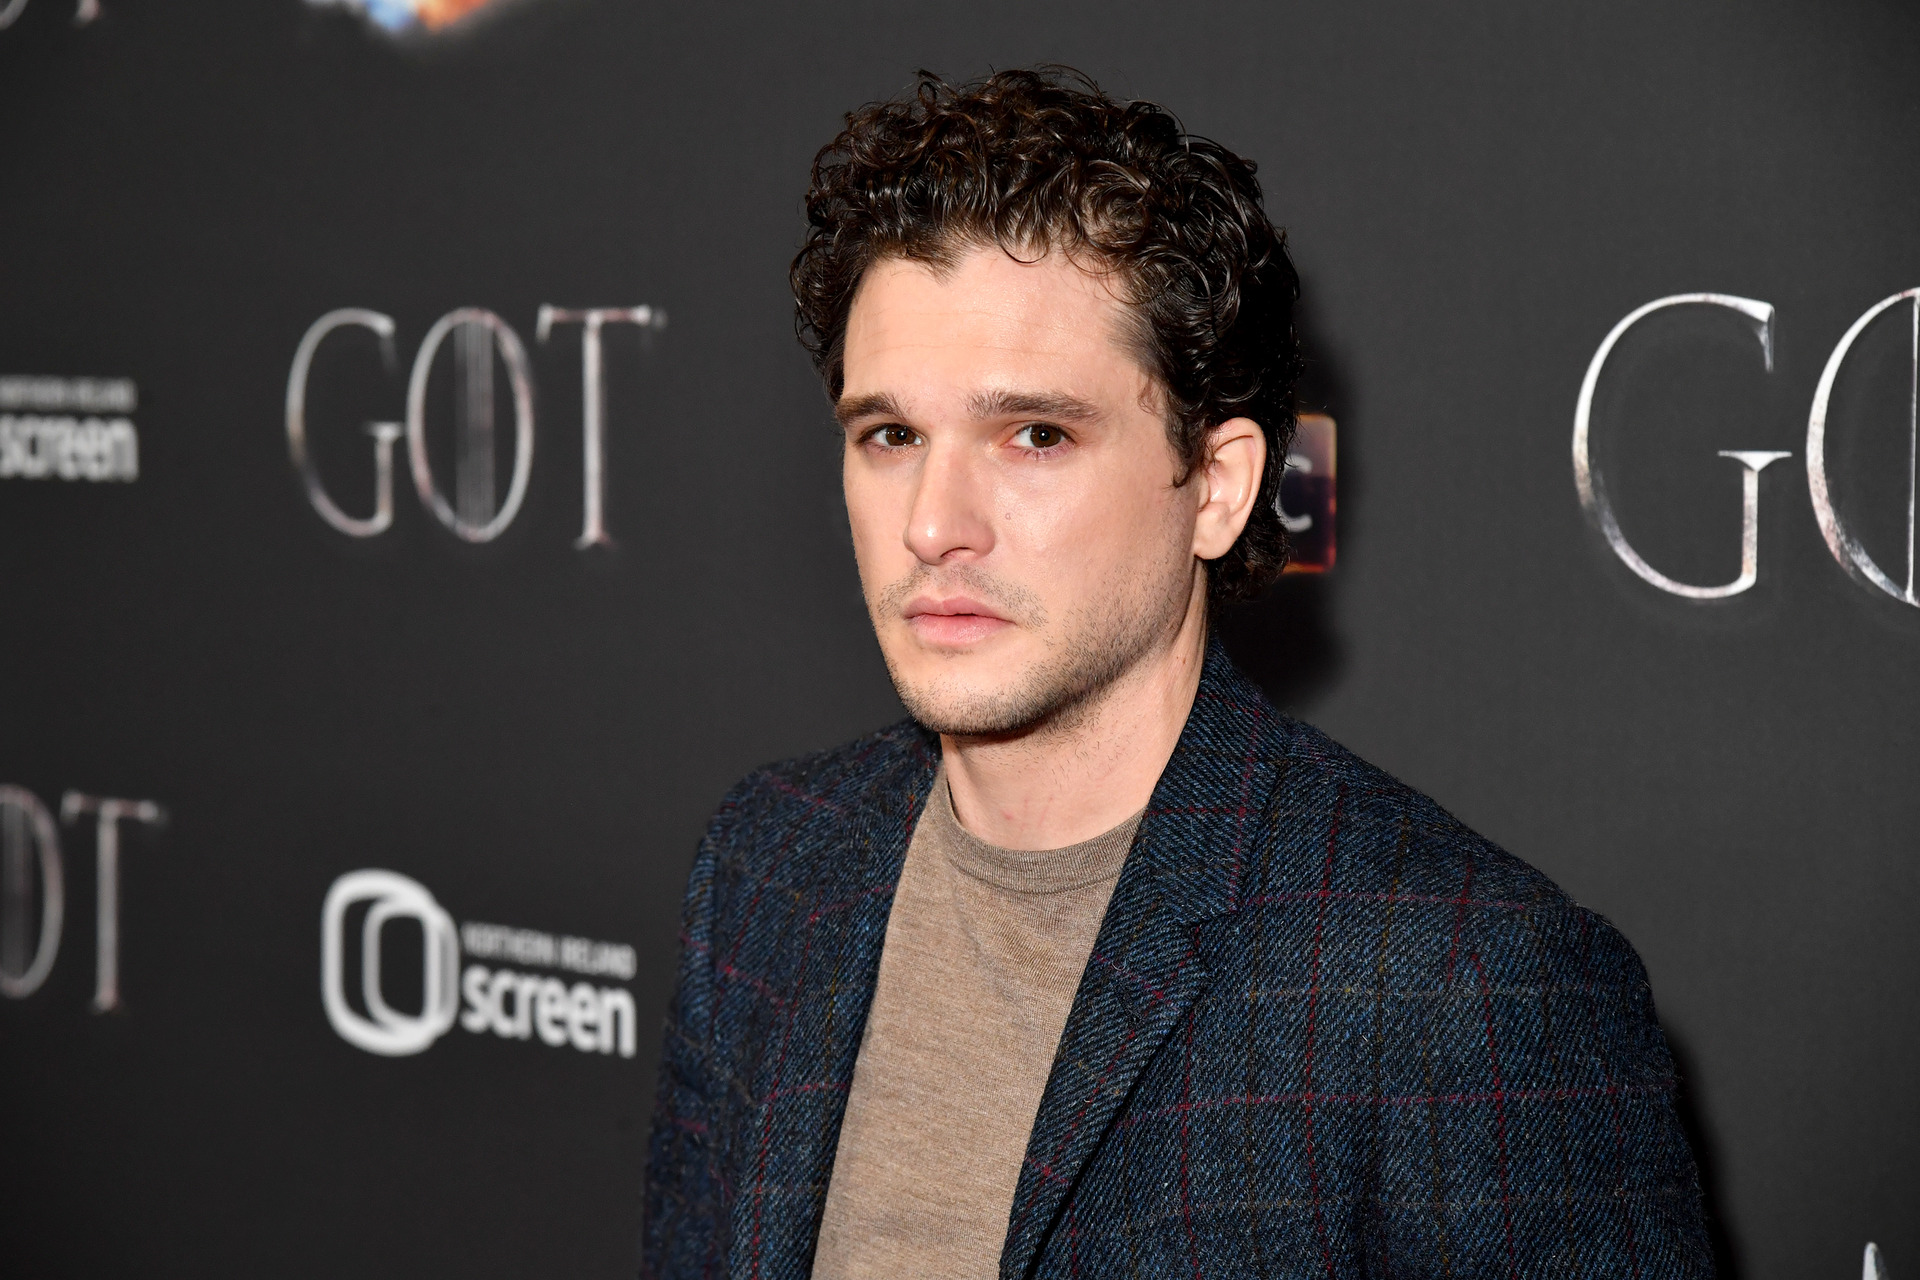 'Lost his way': Why Game of Thrones' Kit Harrington really went to rehab